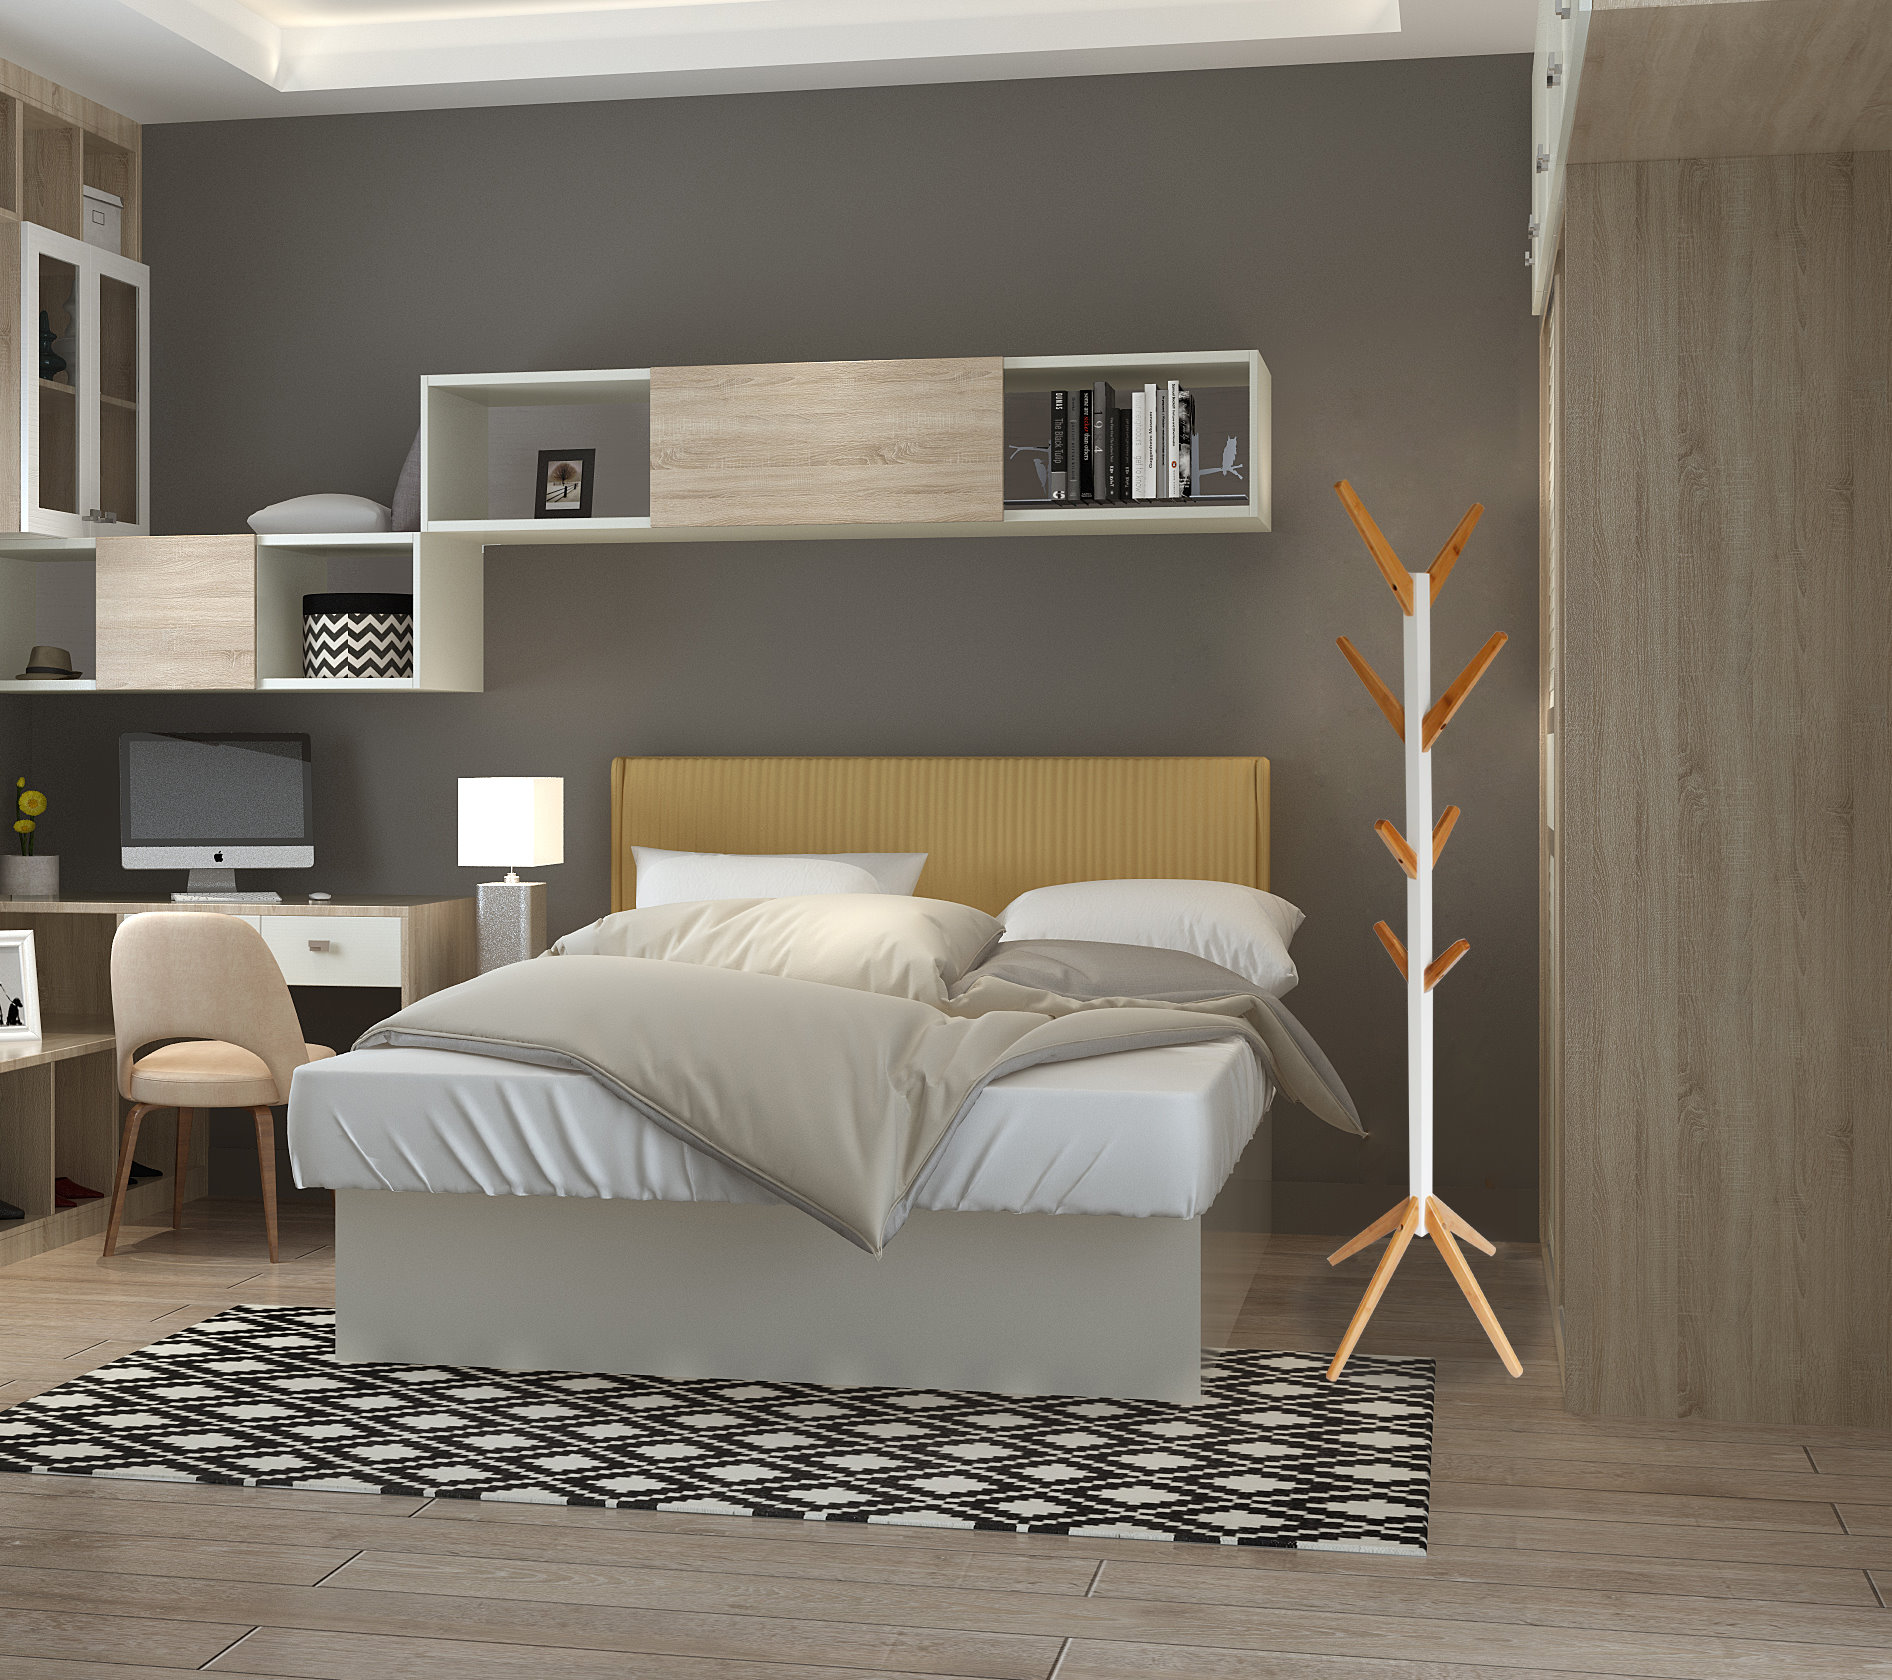 bambus holz gaderobenst nder garderobe st nder kleiderst nder kleiderhaken weiss ebay. Black Bedroom Furniture Sets. Home Design Ideas